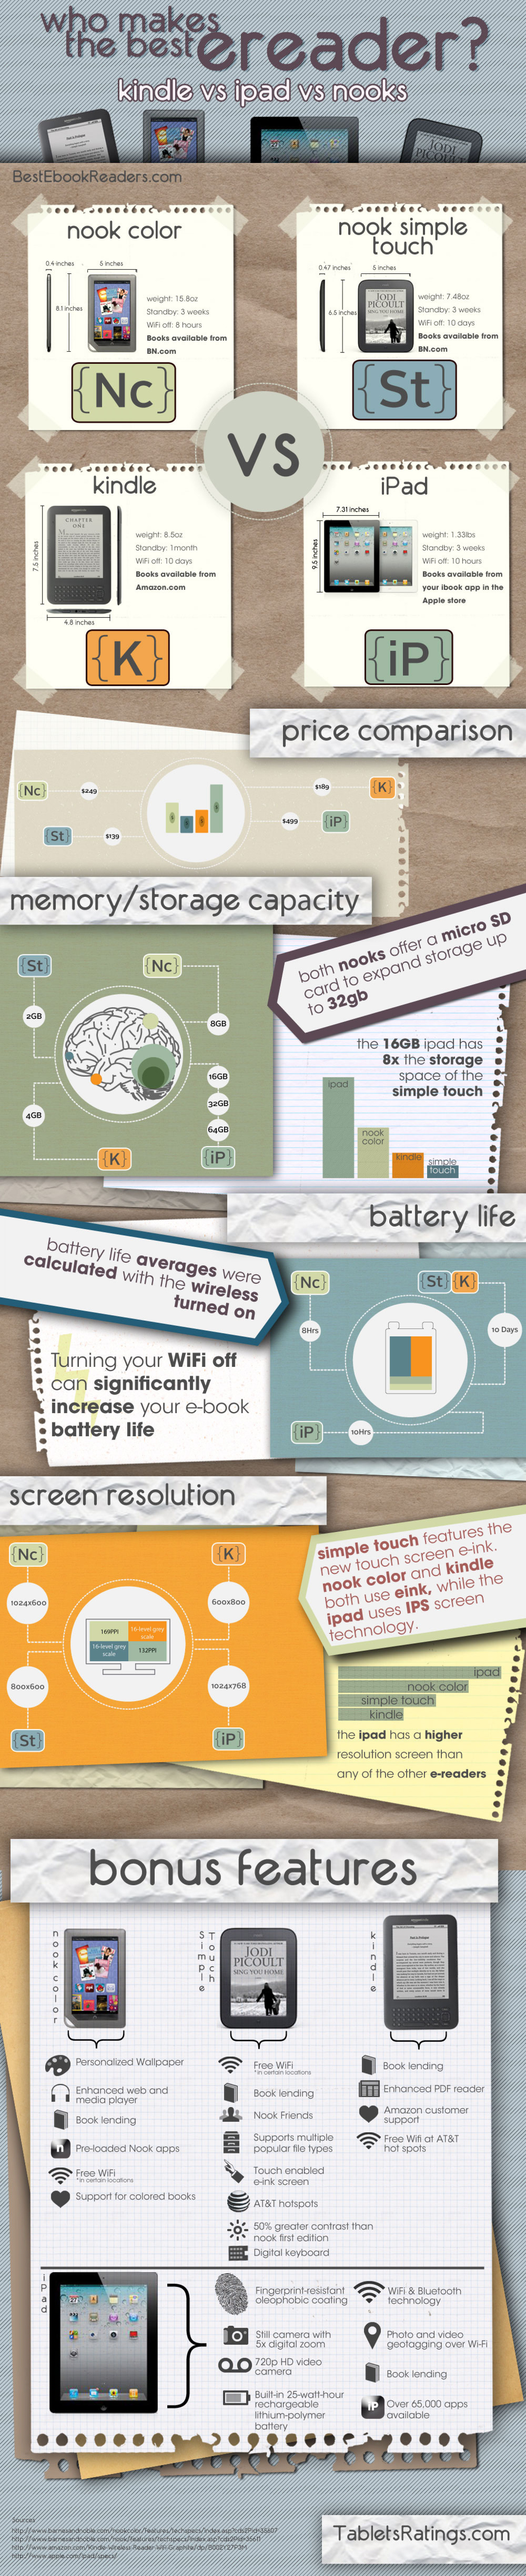 Who Makes The Best e-Reader? Infographic